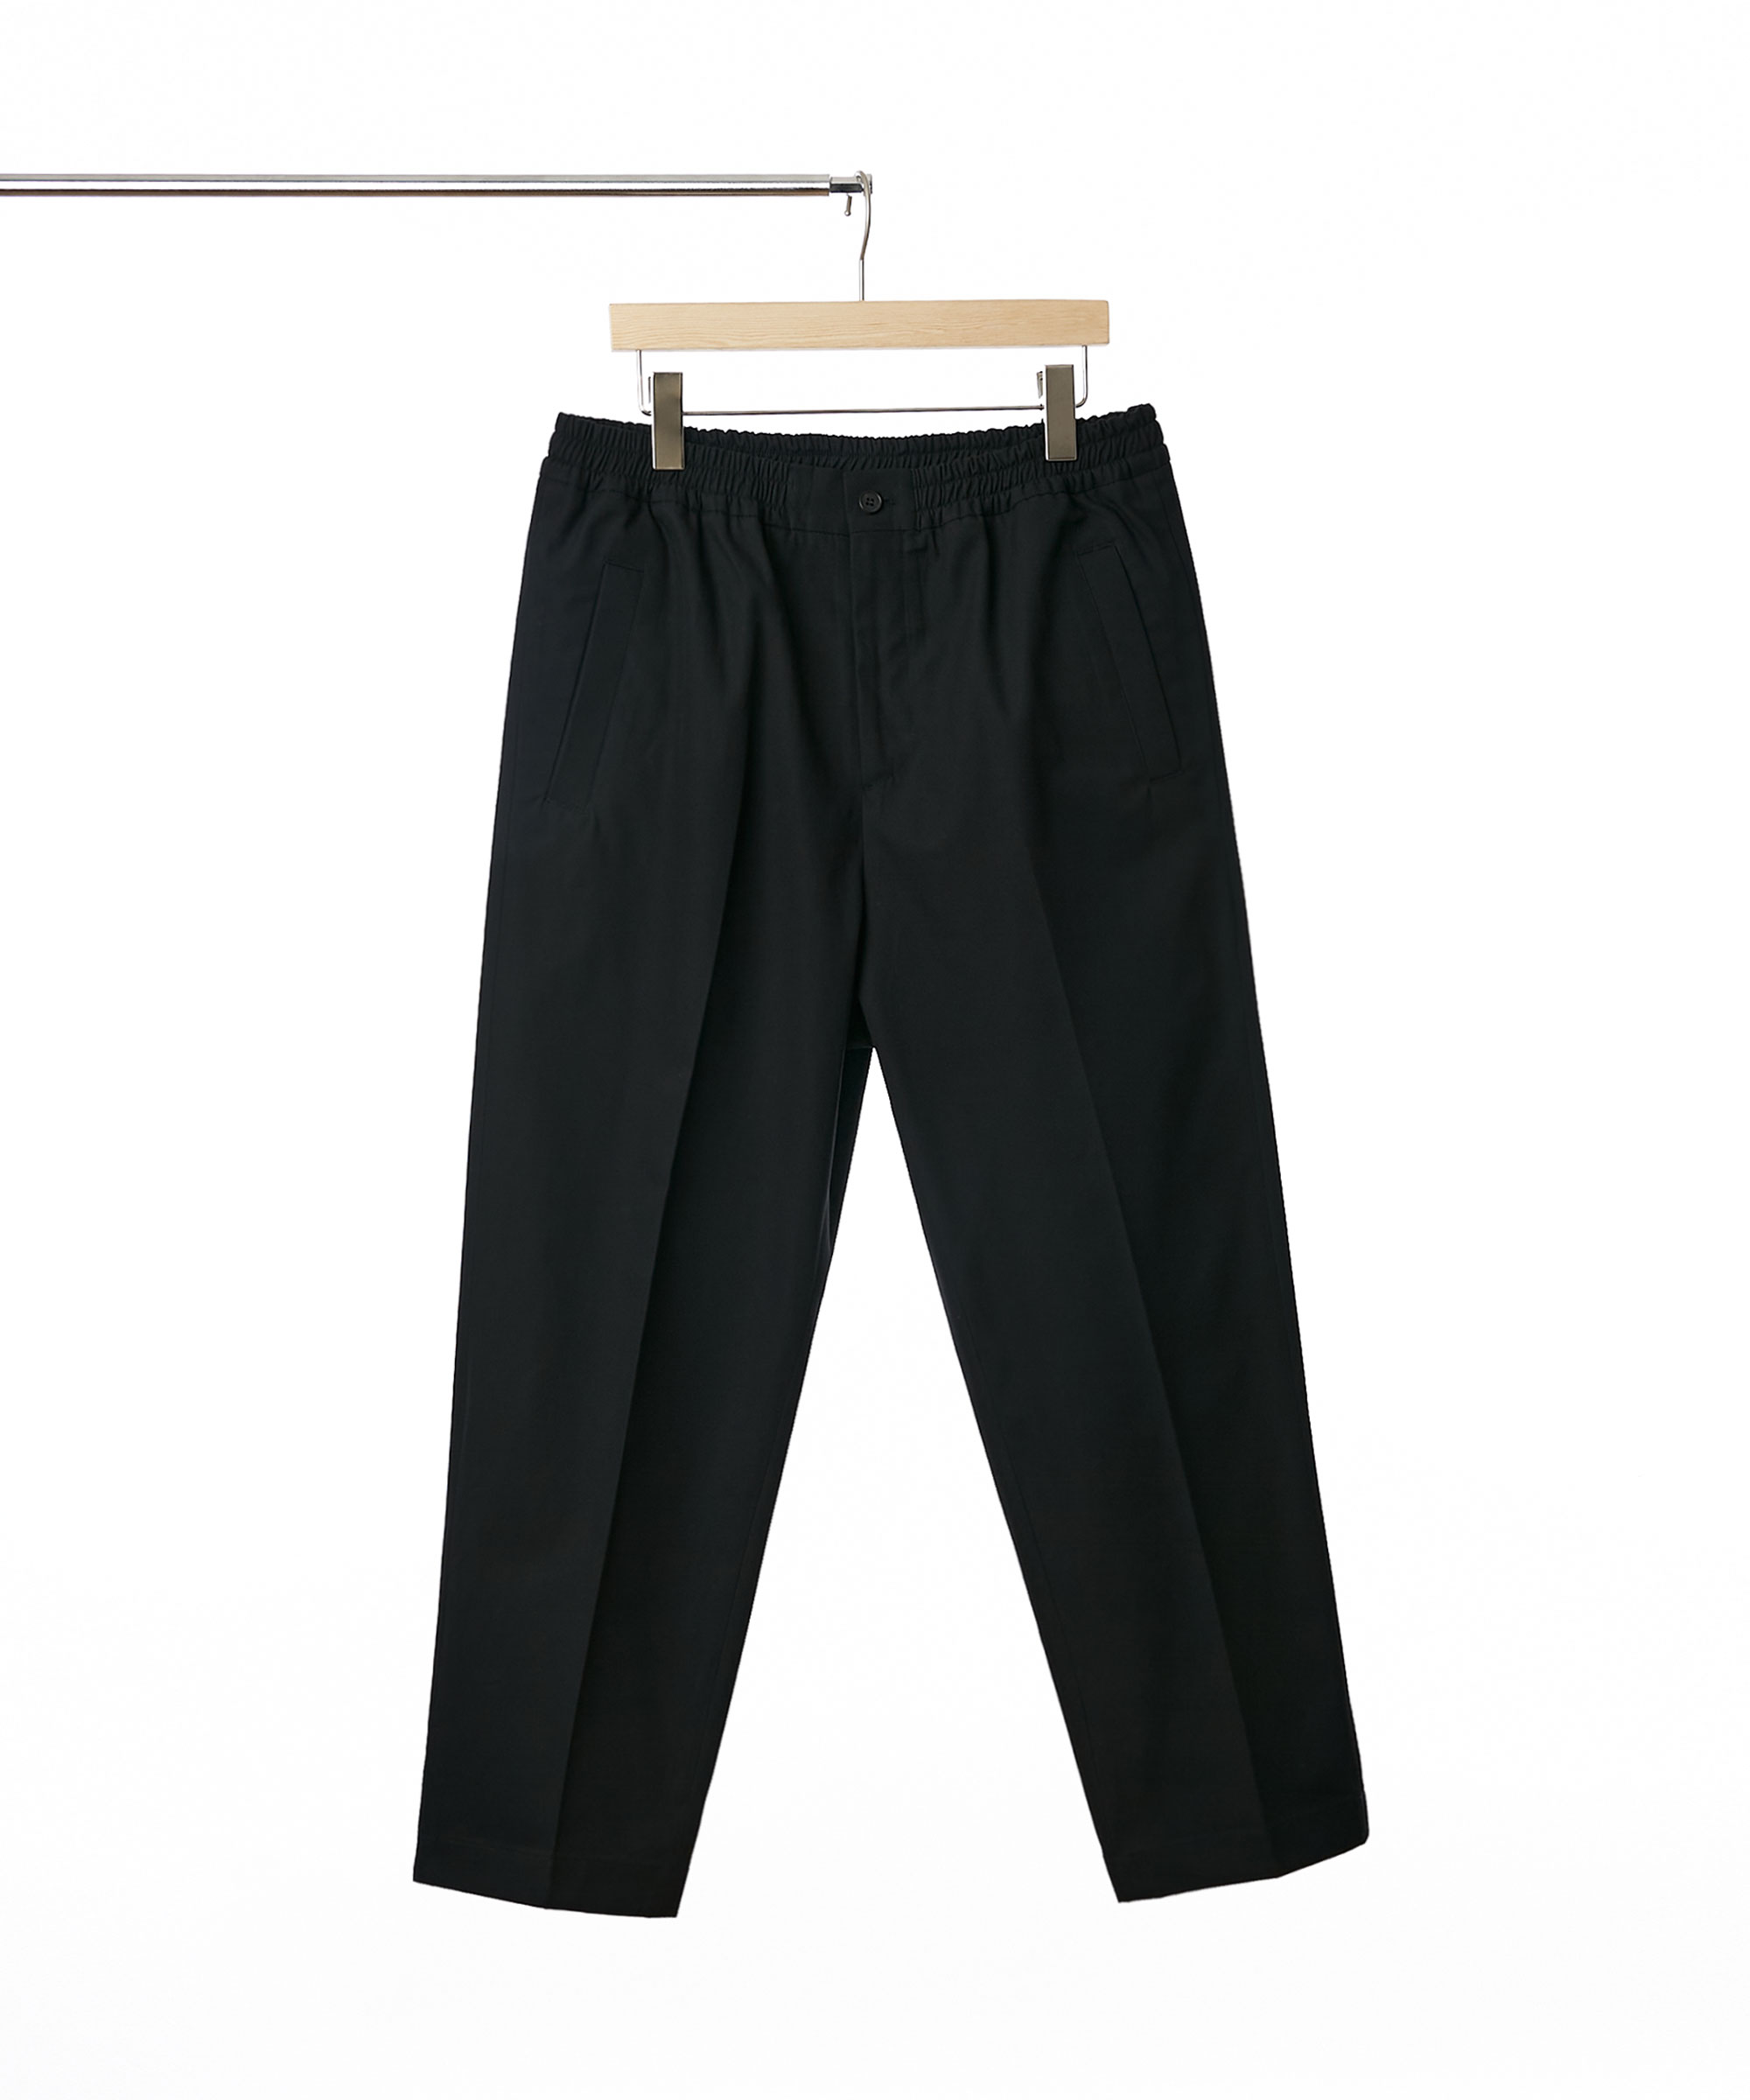 BLACK EASY TAPERED CHINO PANTS 01